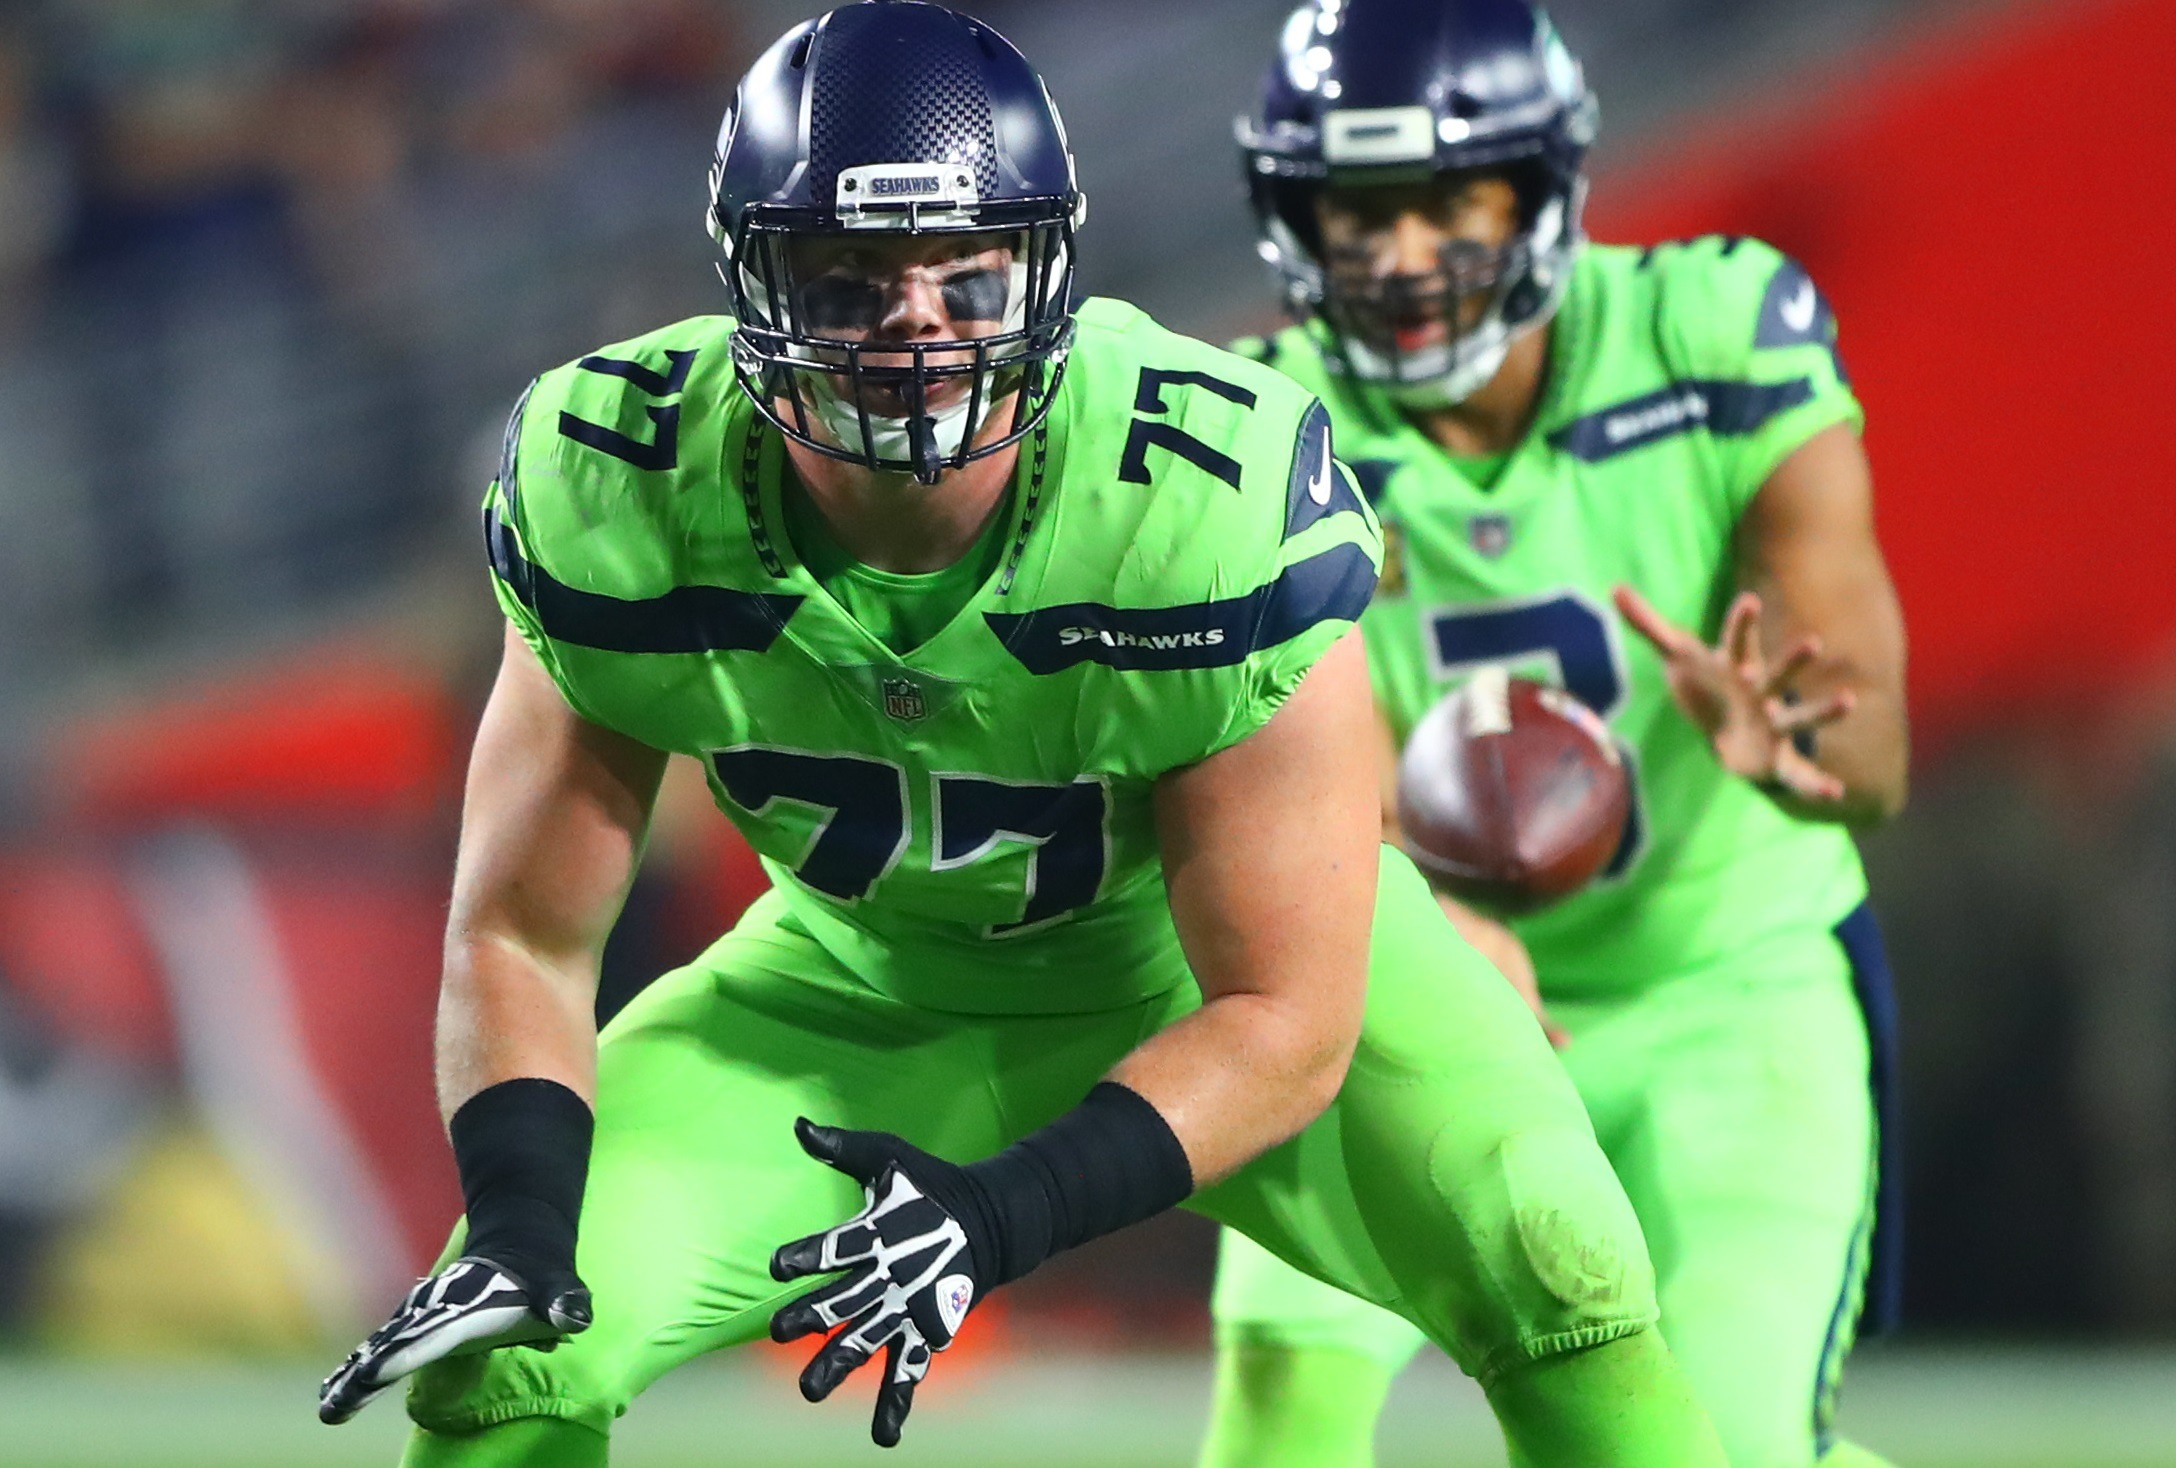 Seahawks G Ethan Pocic 'Didn't Work Out Very Well' in Reserve Role